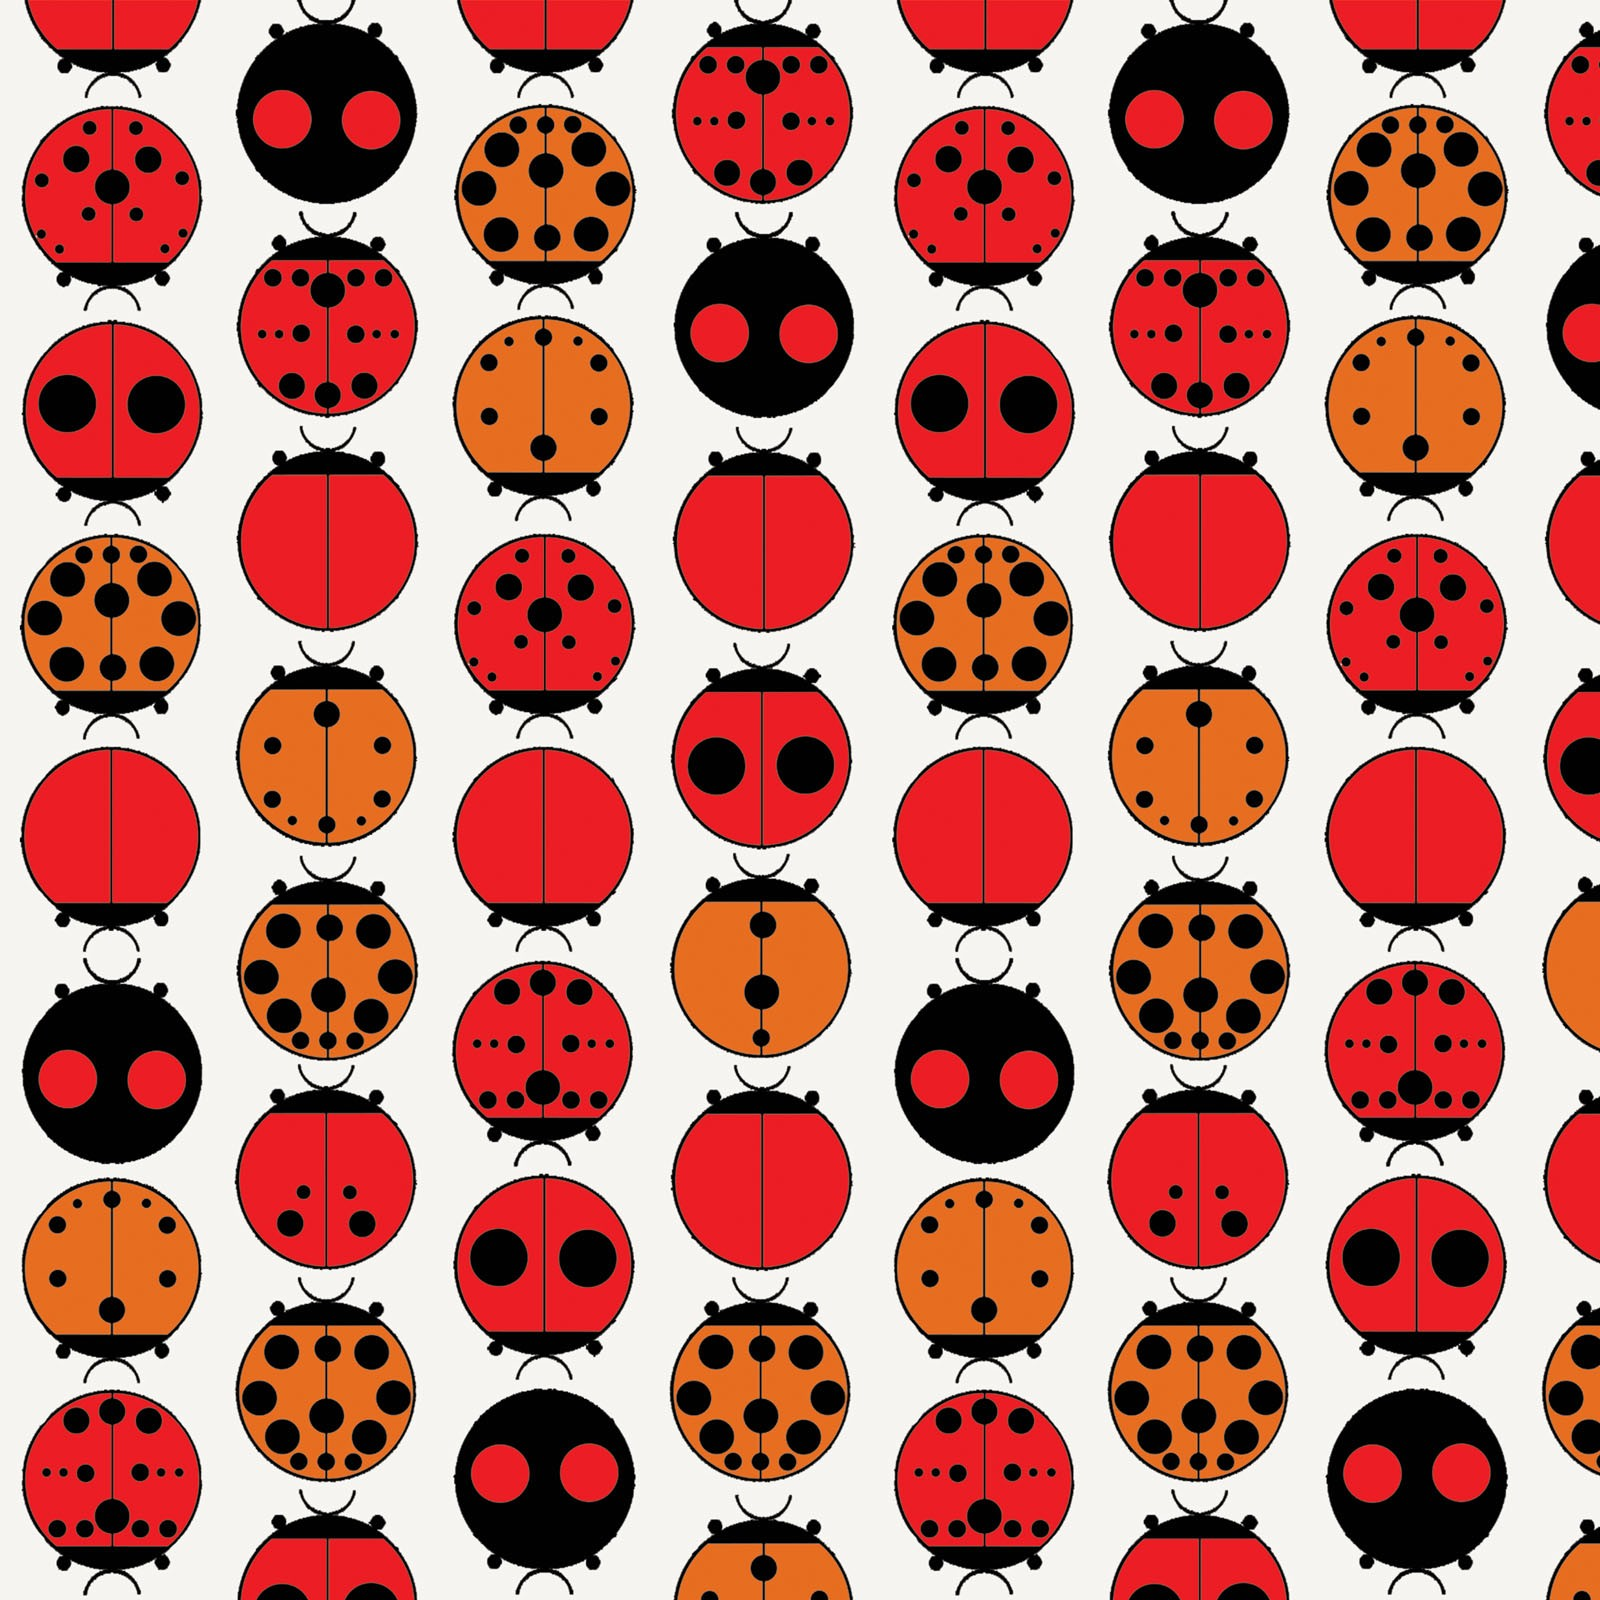 Ladybugs (Poplin Fabric) by Charley Harper from the Best of Charley Harper collection for Birch #CH89